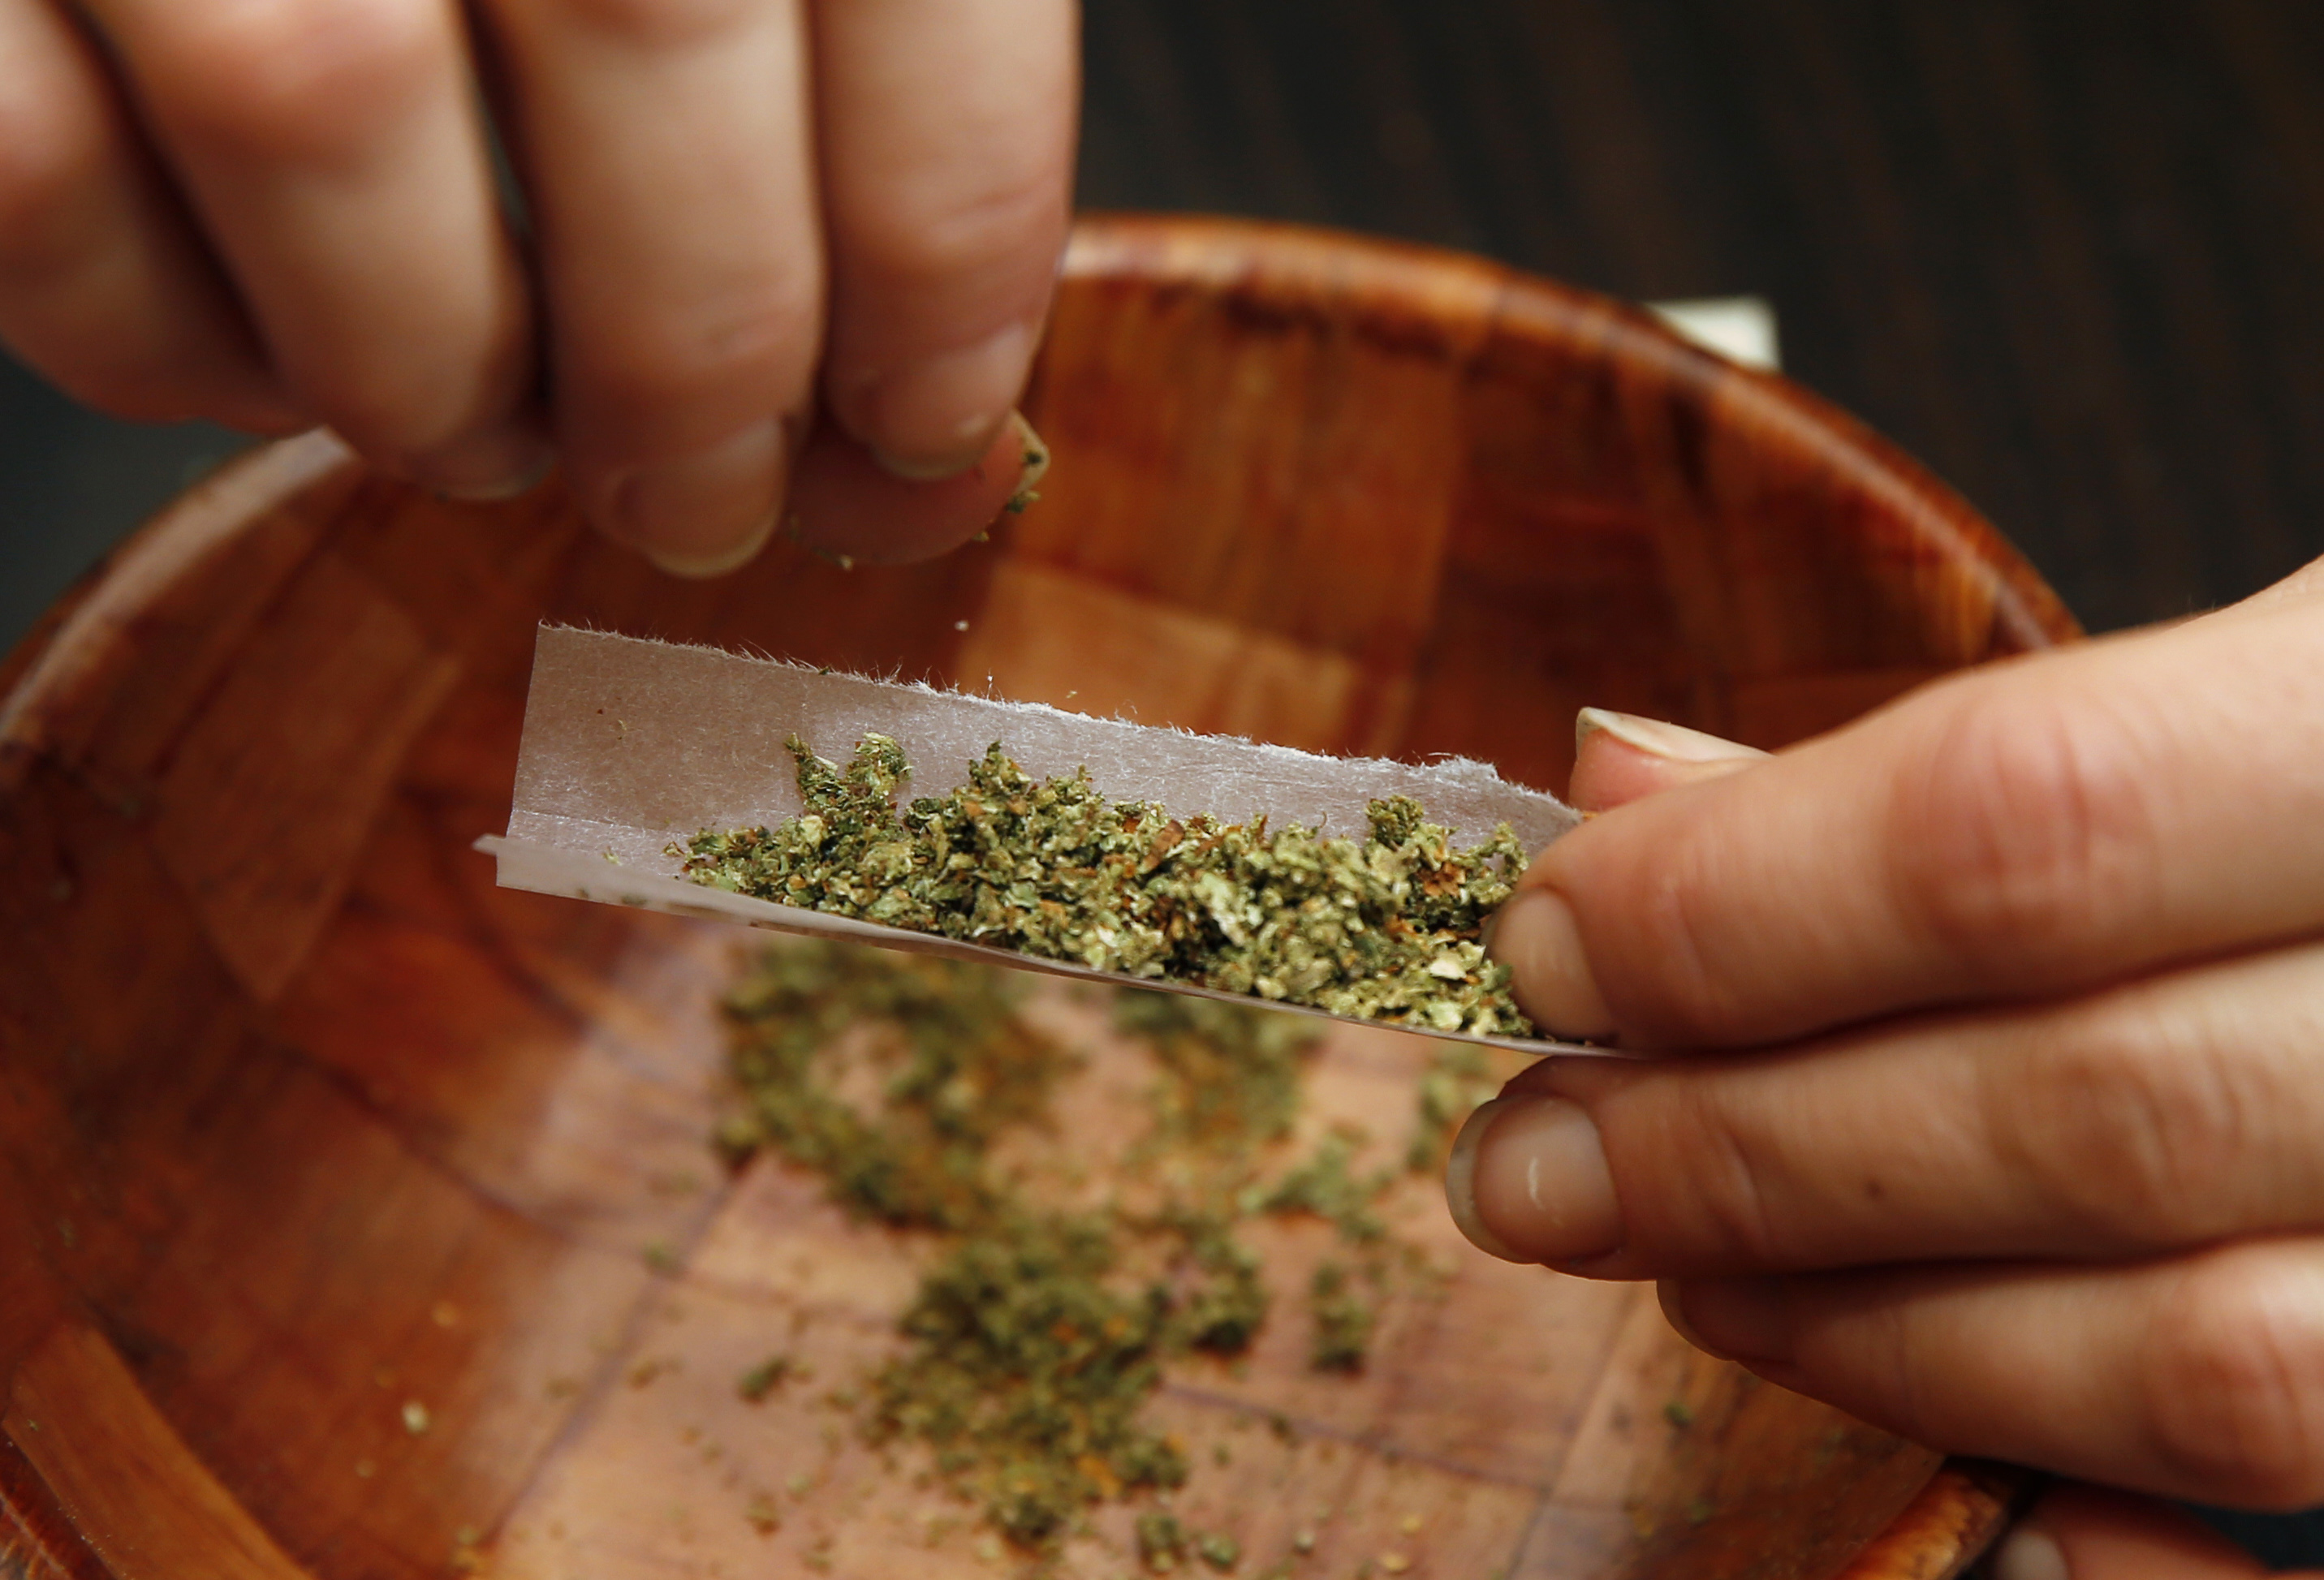 D.C. Council considers letting ban expire on marijuana use in private businesses